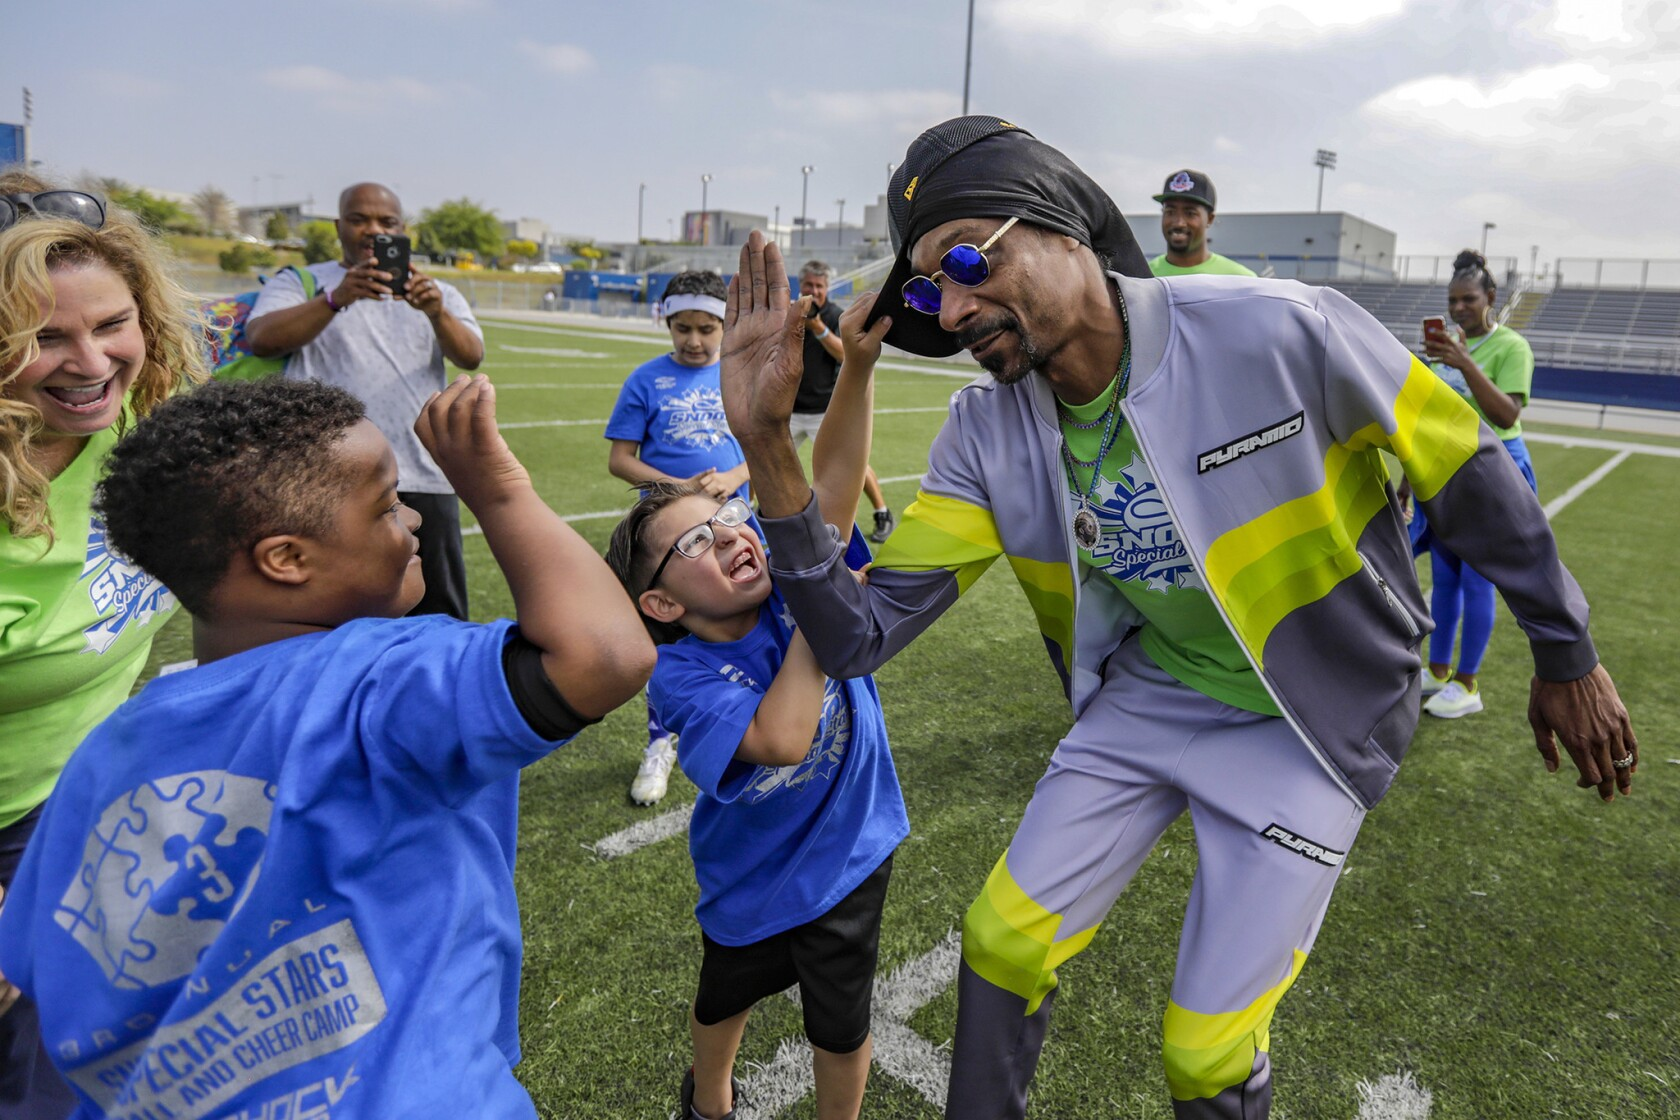 Column: Snoop Dogg's Special Stars youth camp showcases the